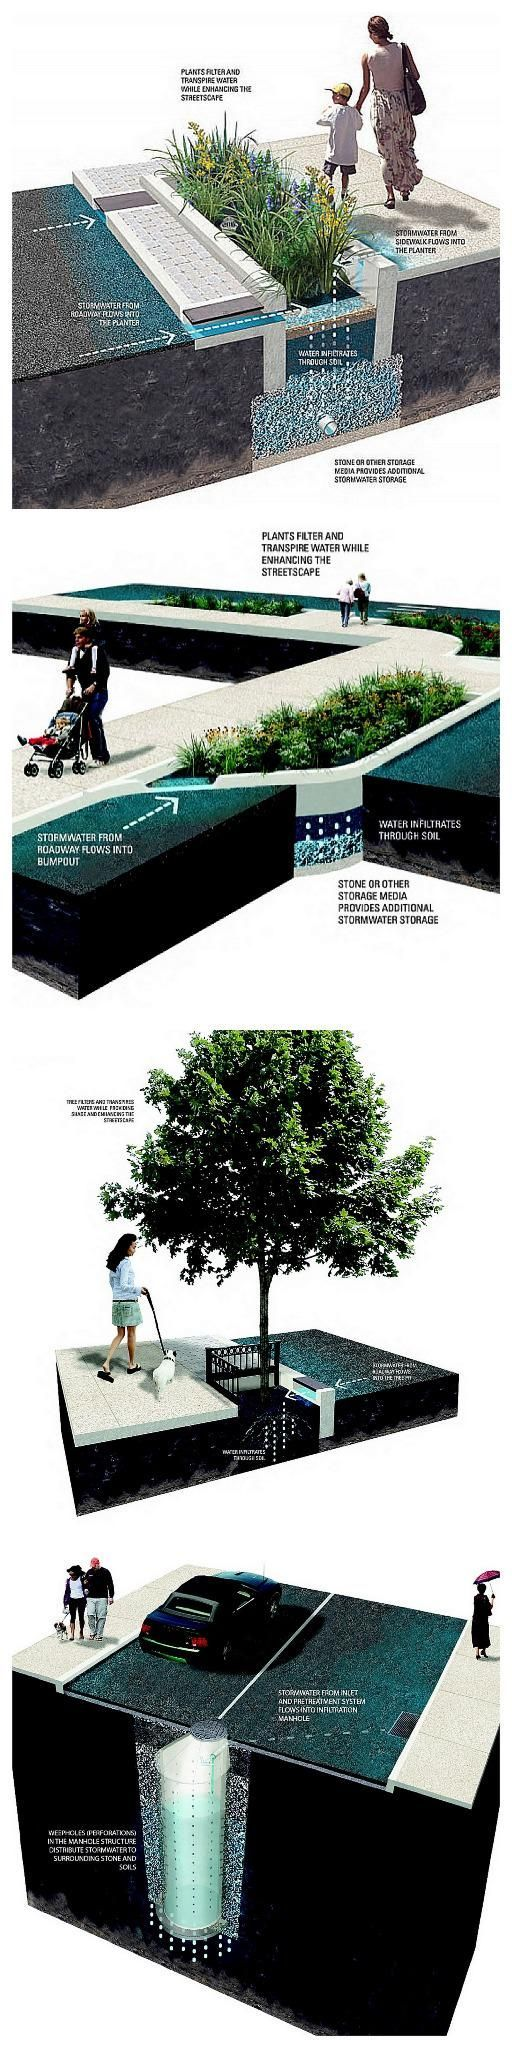 "Stormwater filtration systems from the Philadelphia Water Department's ""Green City, Clean Waters"" program. Click image for link to full profile and visit the slowottawa.ca boards >> https://www.pinterest.com/slowottawa/"